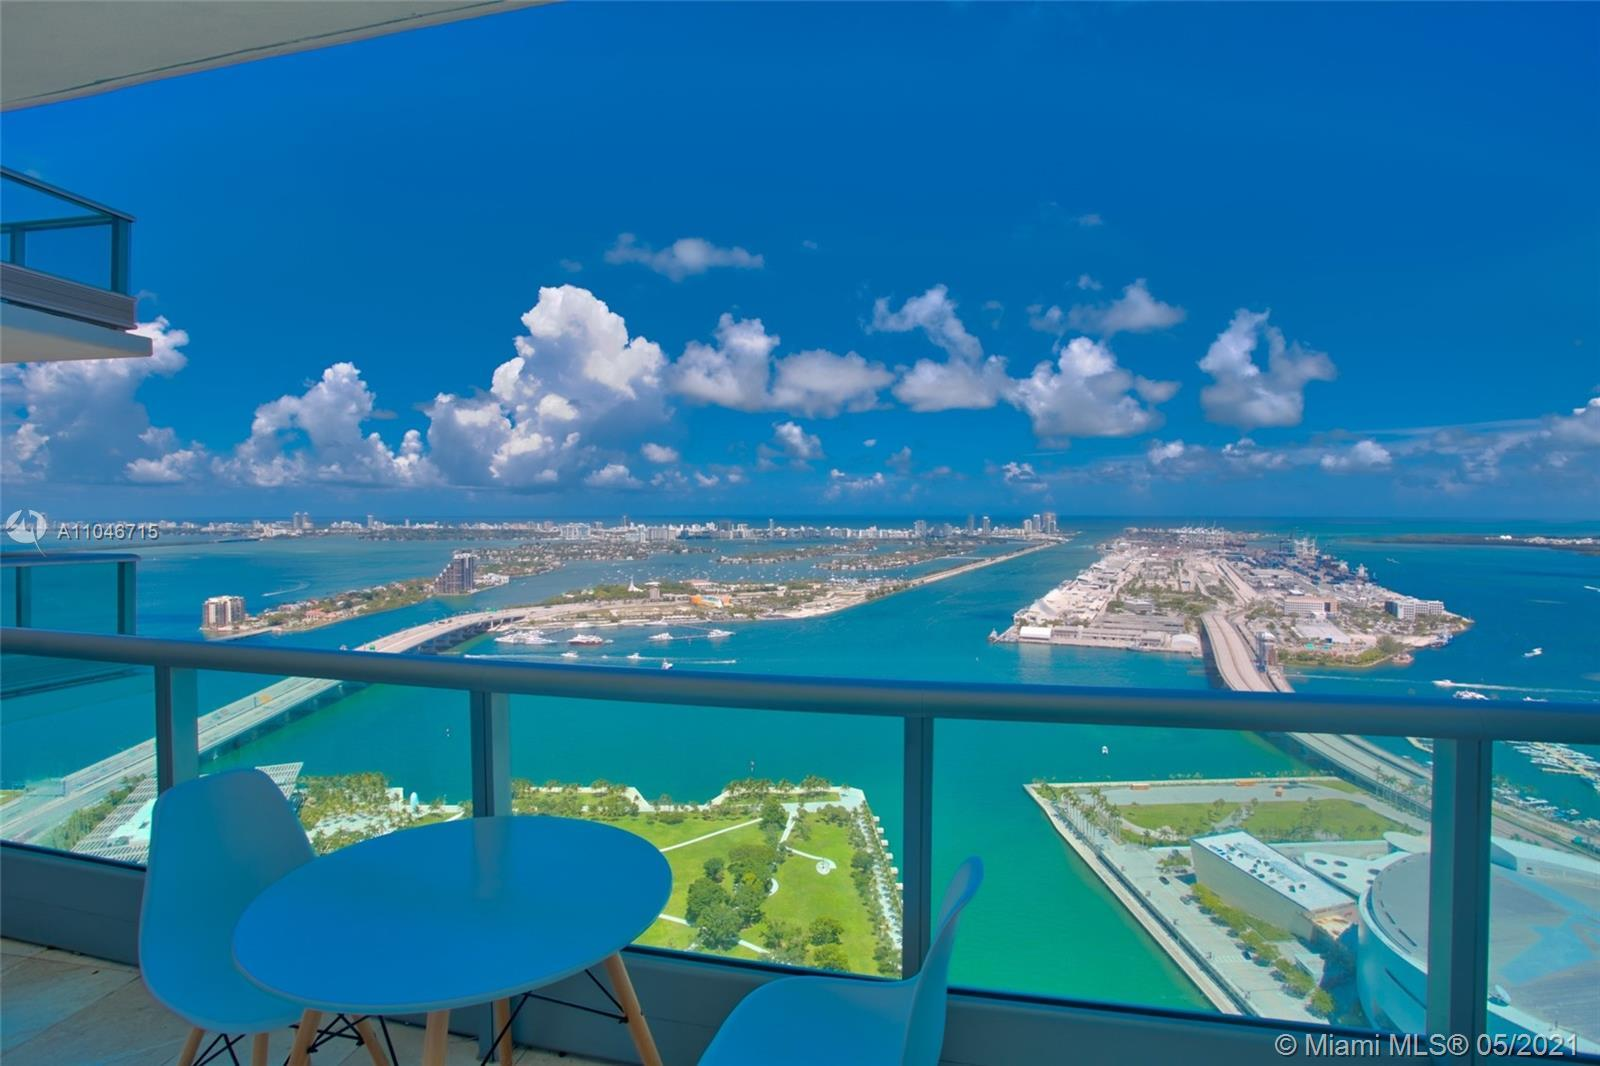 Ultra-luxurious 3 bedrooms 3 bath condo soaring 55 floors above Miami with truly spectacular unobstr